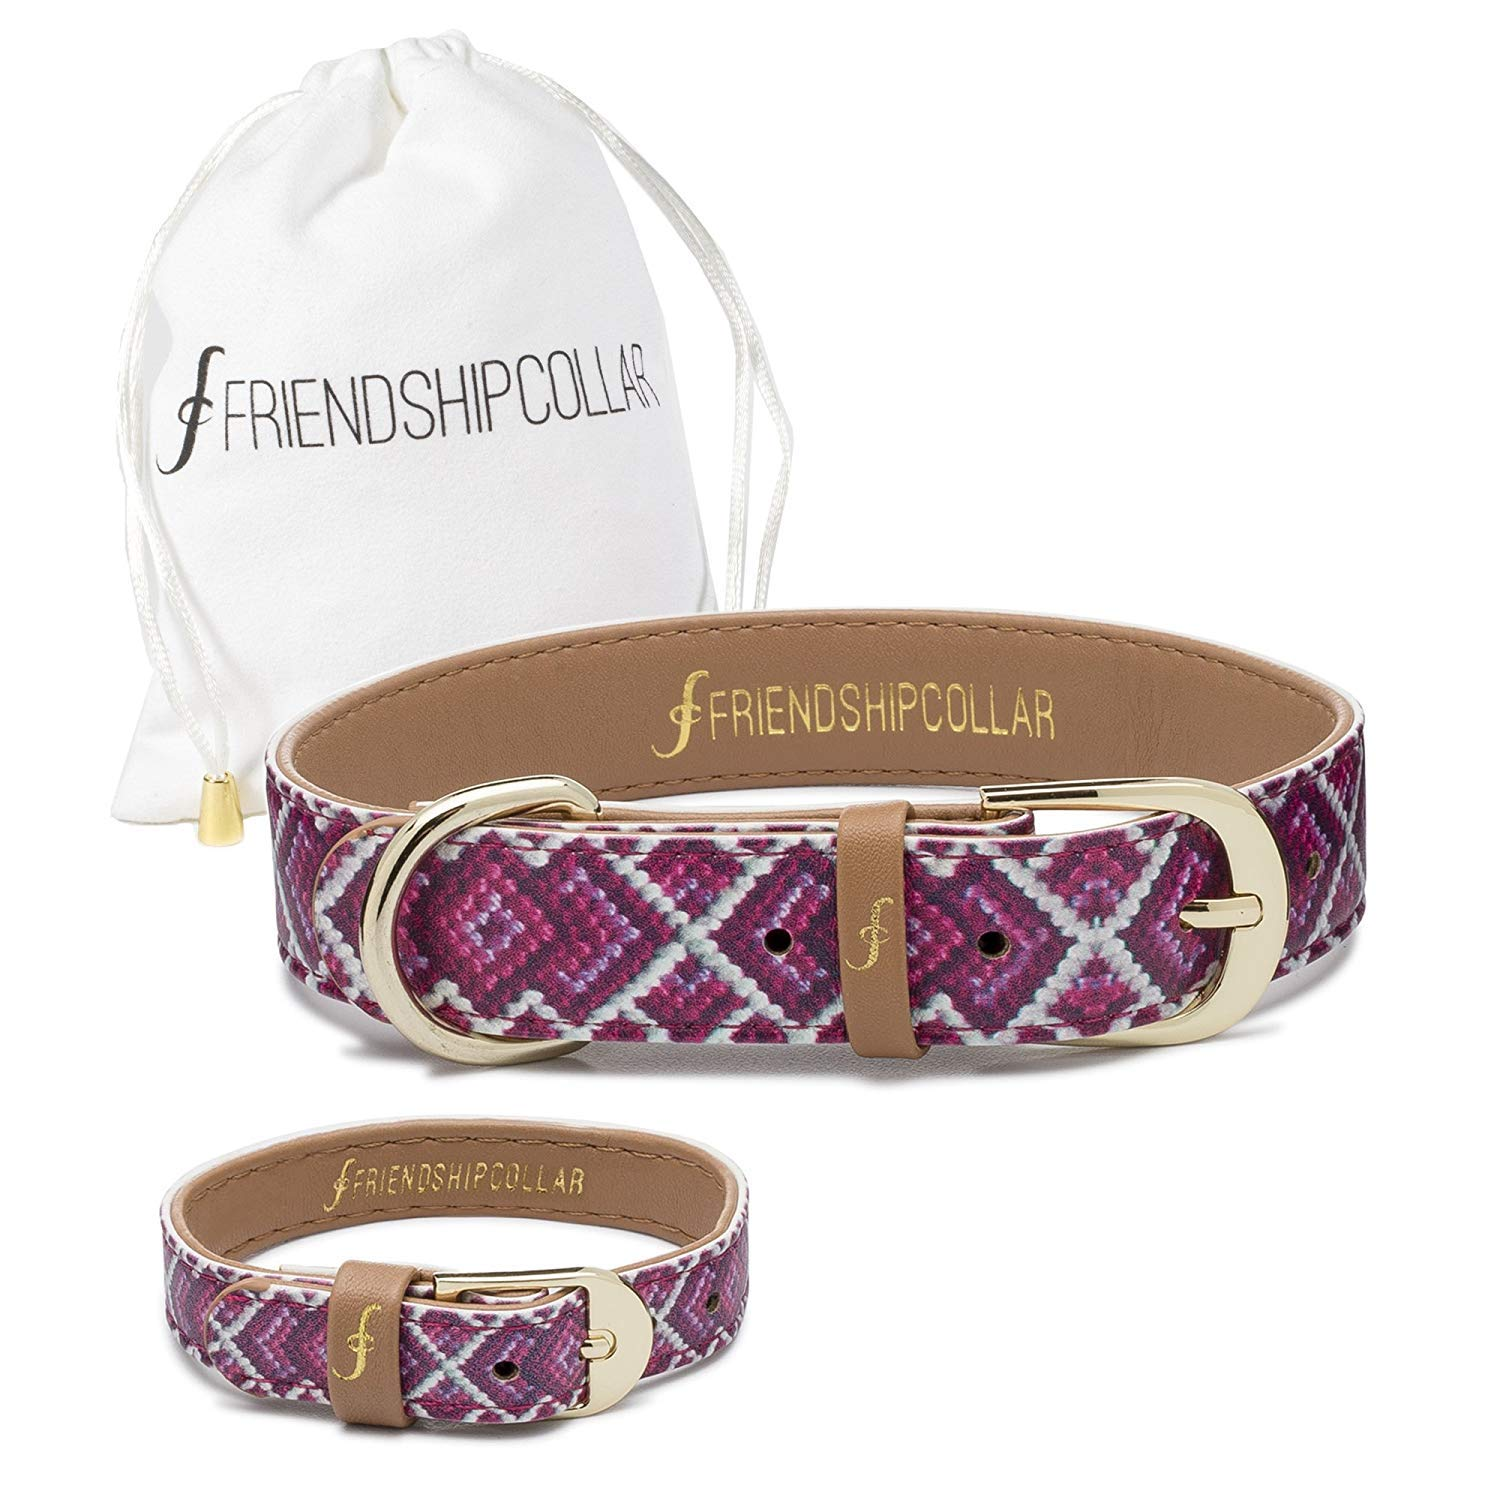 FriendshipCollar Dog Collar and Matching Bracelet - The Pink Princess - Large by FriendshipCollar